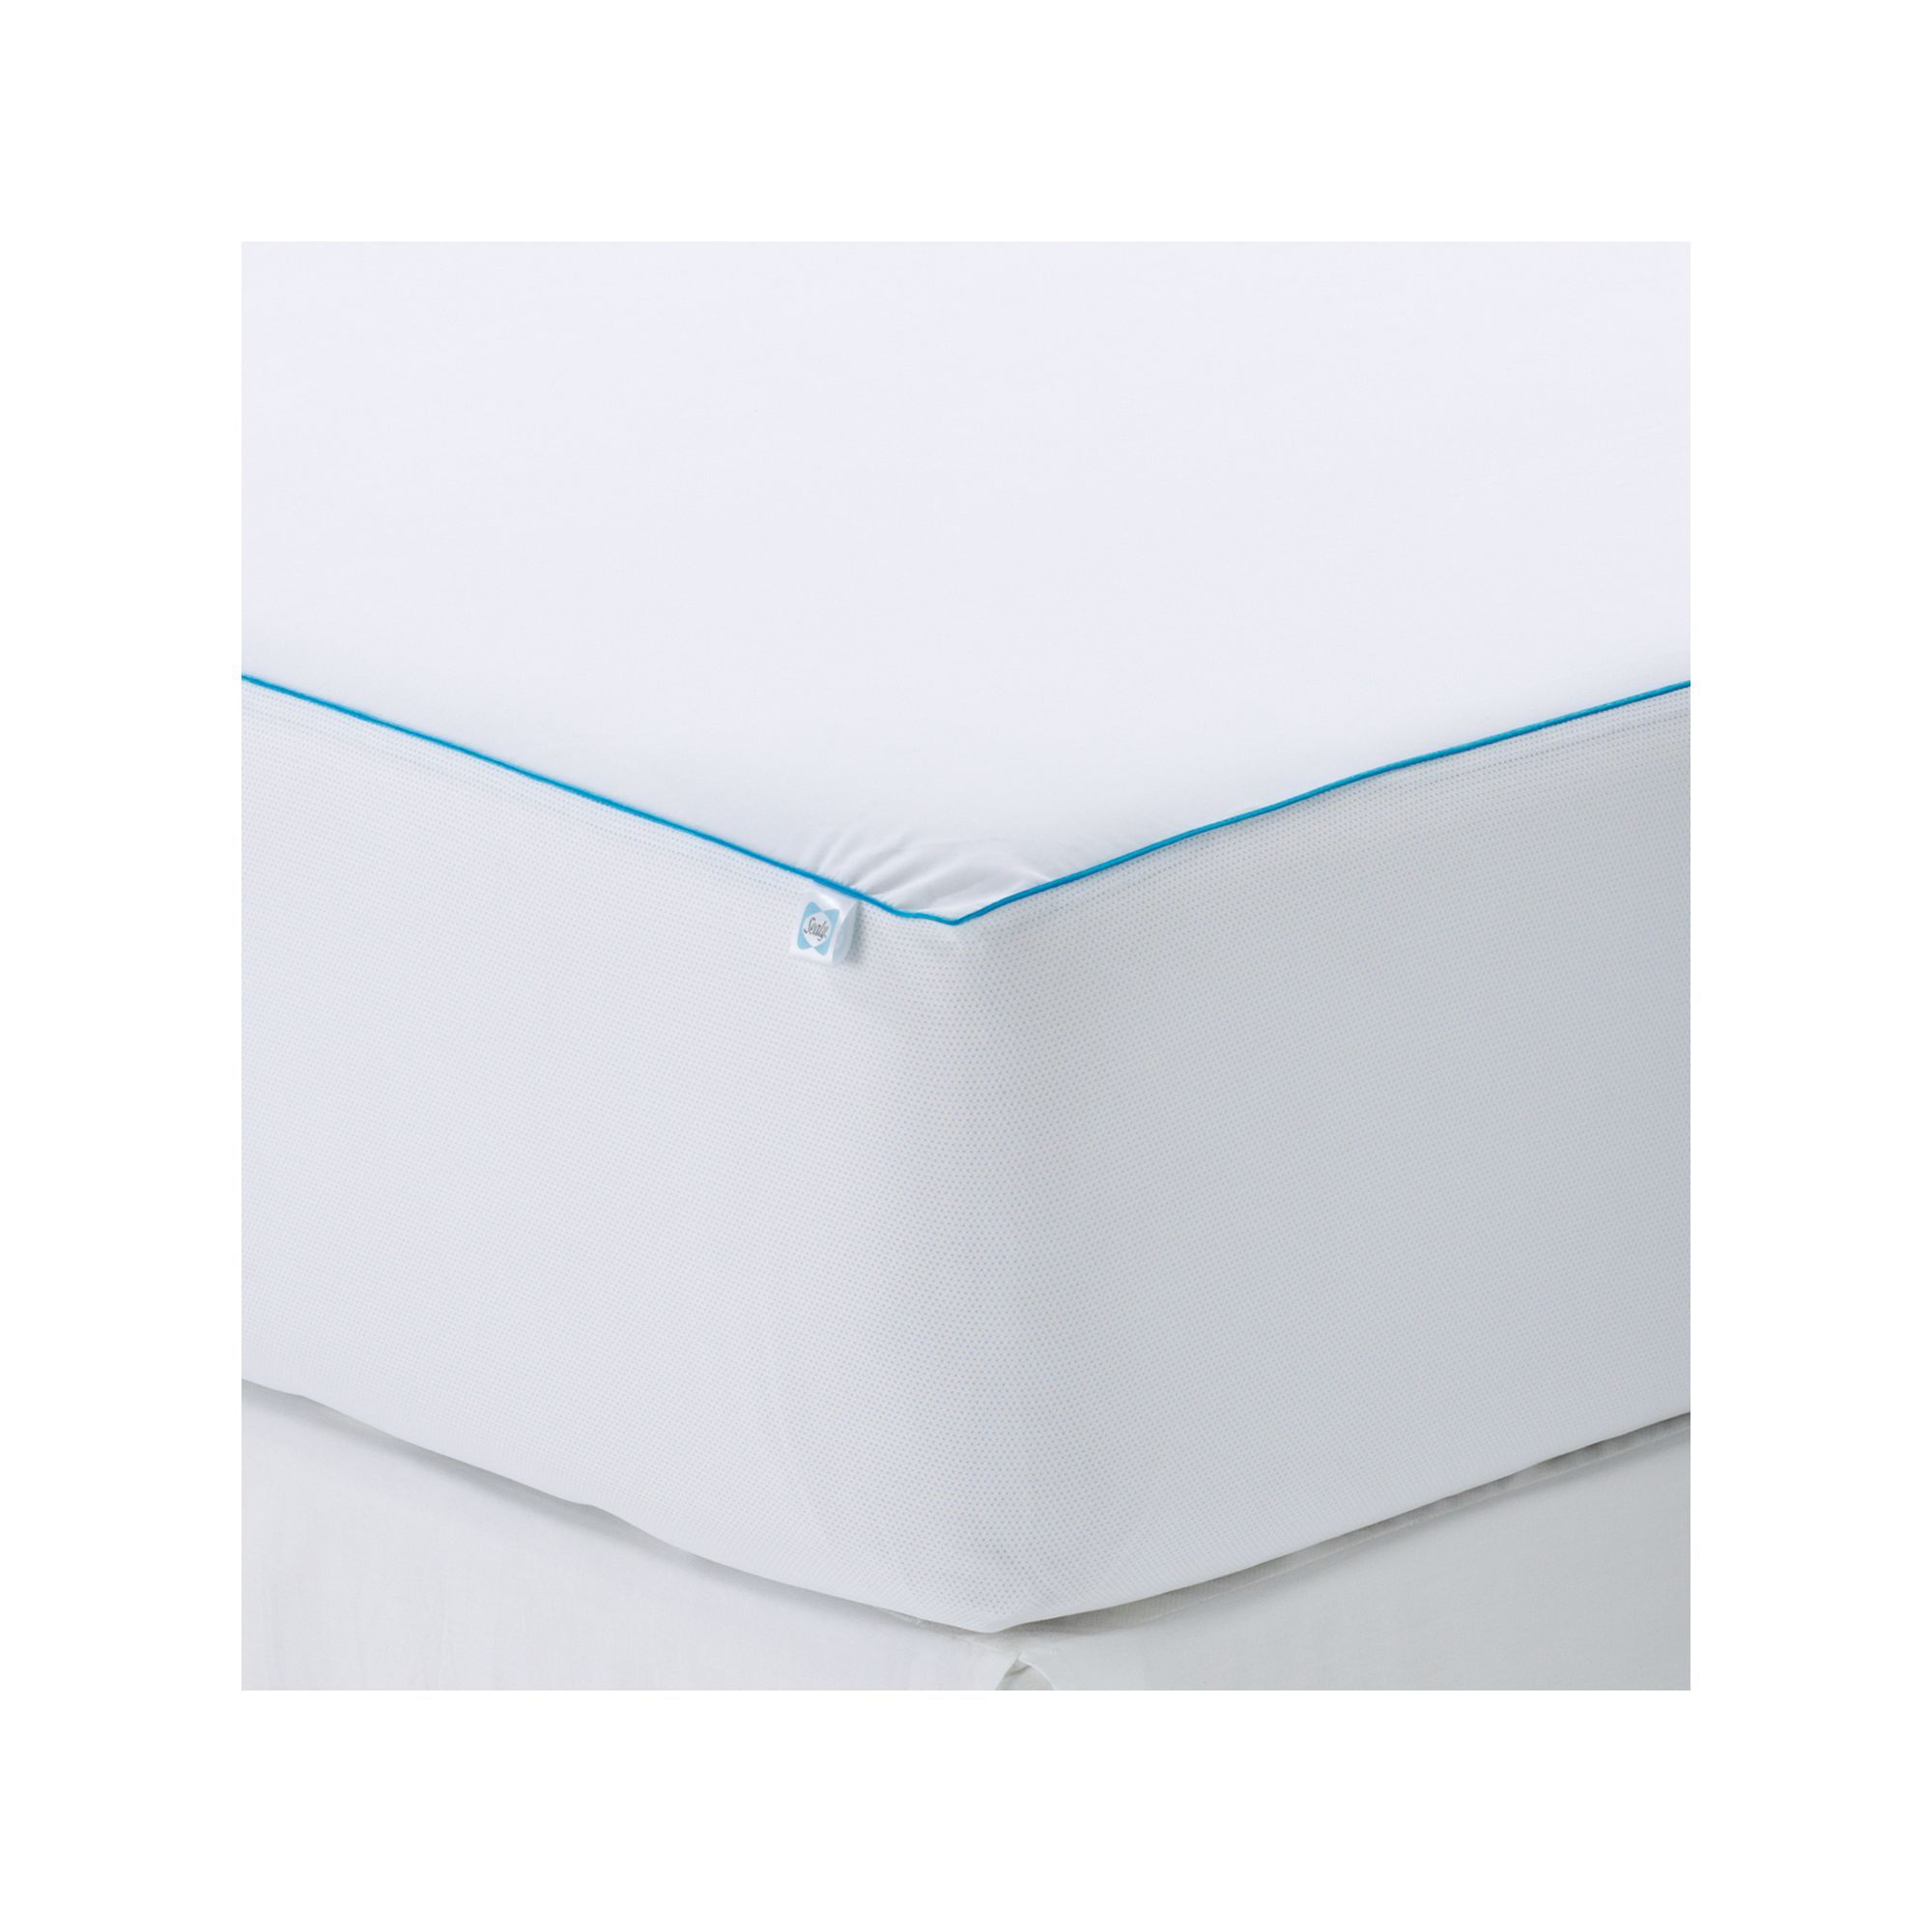 Sealy Cooling Comfort Mattress Protector White Queen Comfort